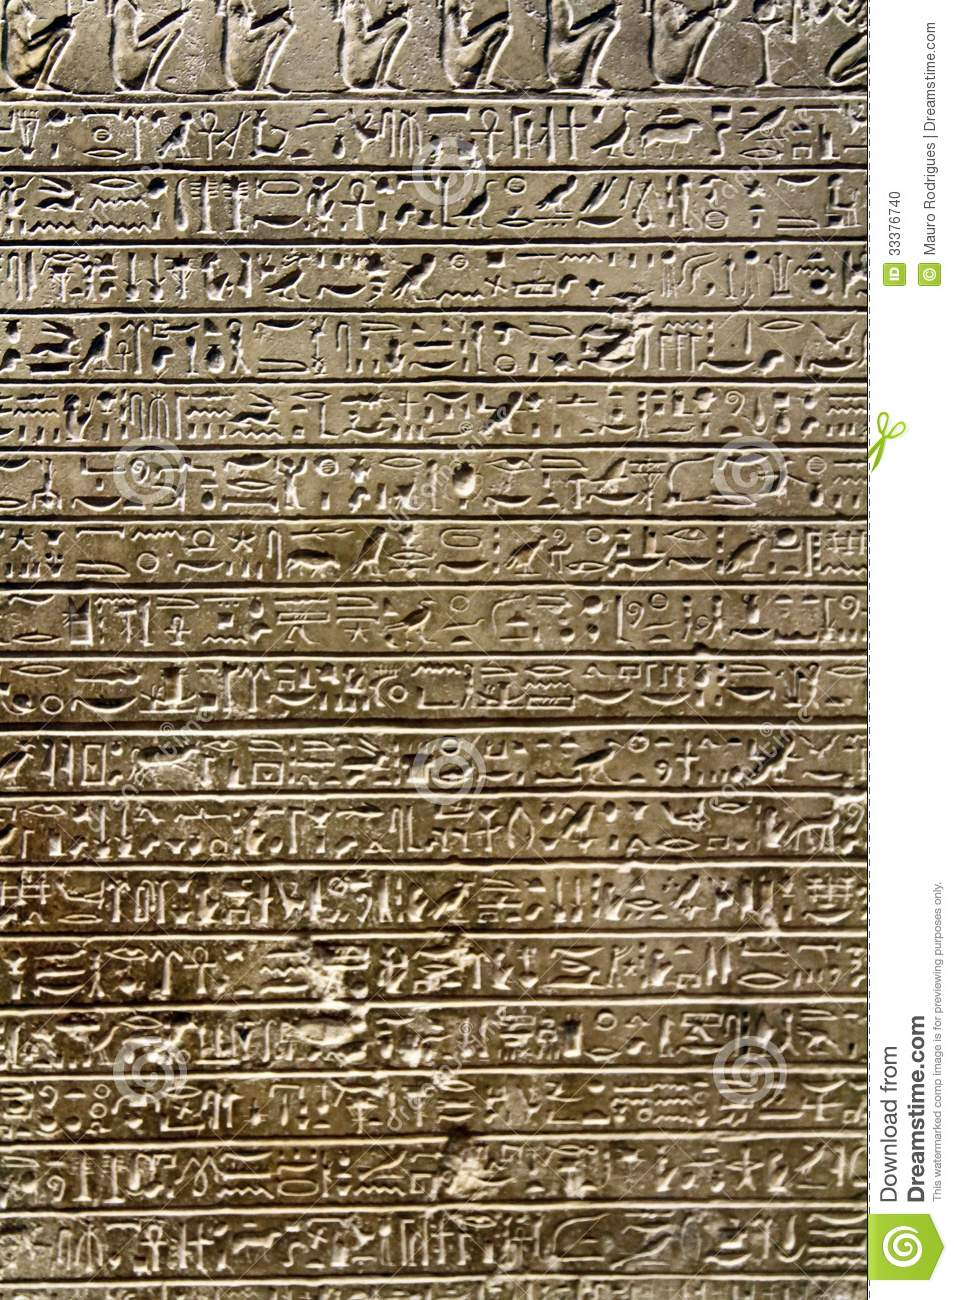 https://thumbs.dreamstime.com/z/ancient-egyptian-hieroglyphic-cuneiform-writing-33376740.jpg